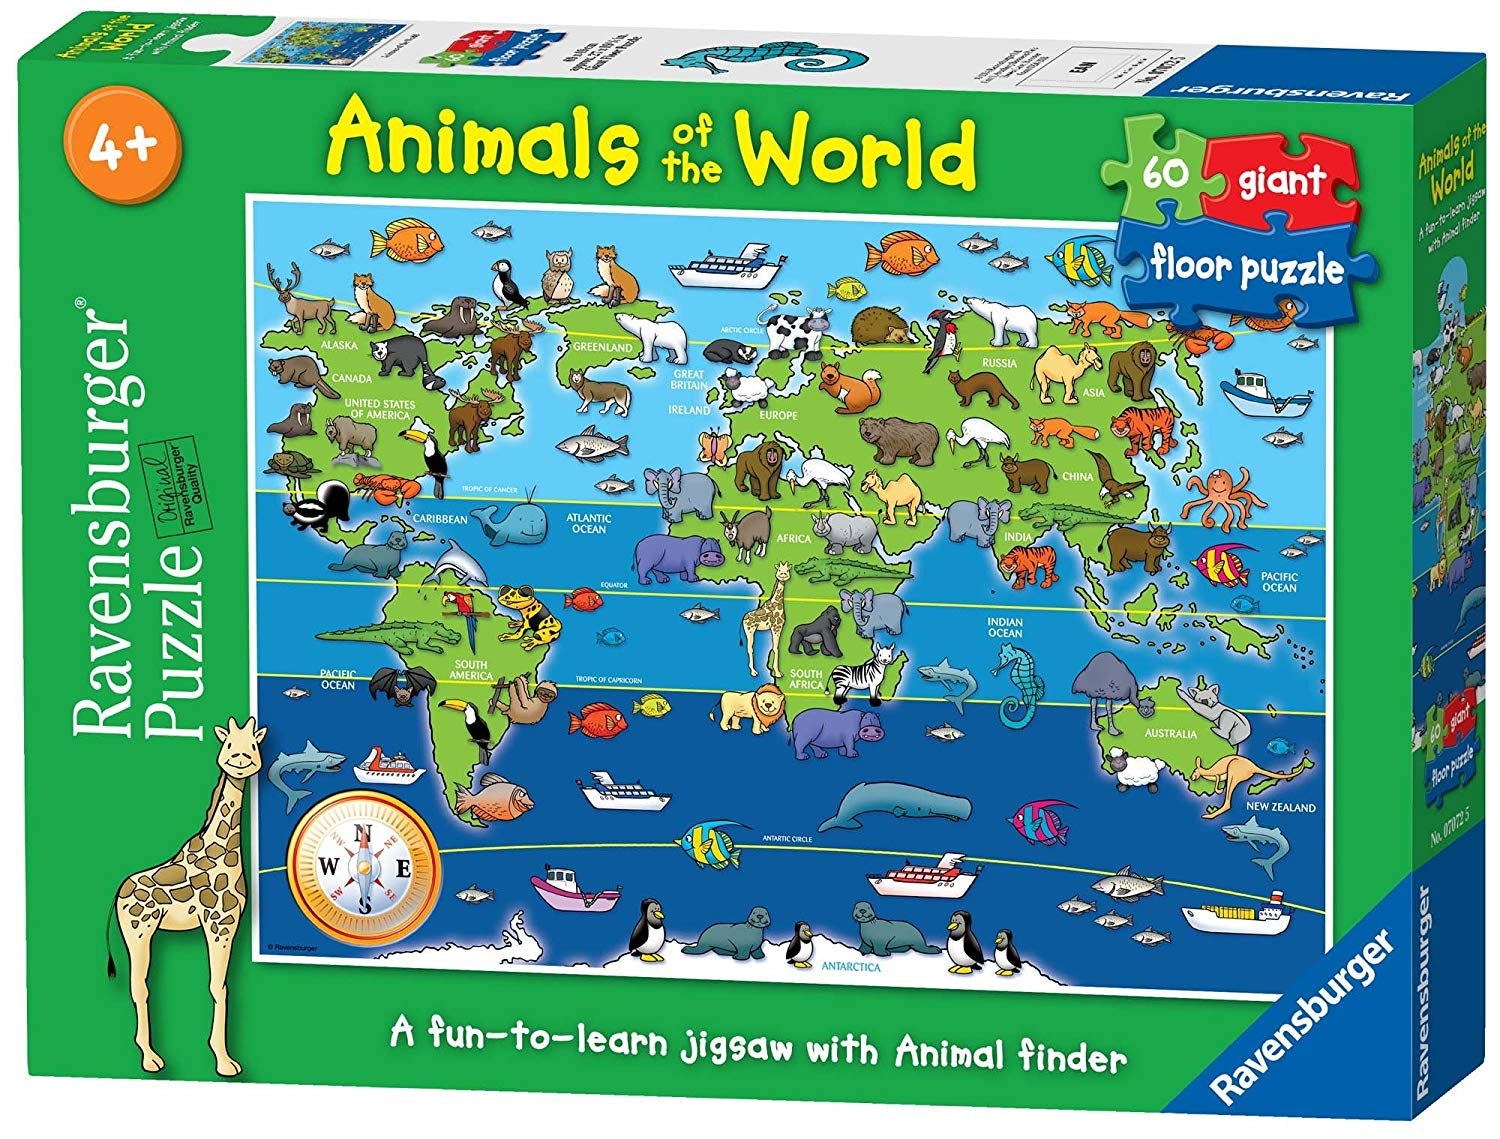 Animals of the World 60pc Giant Floor Jigsaw Puzzle